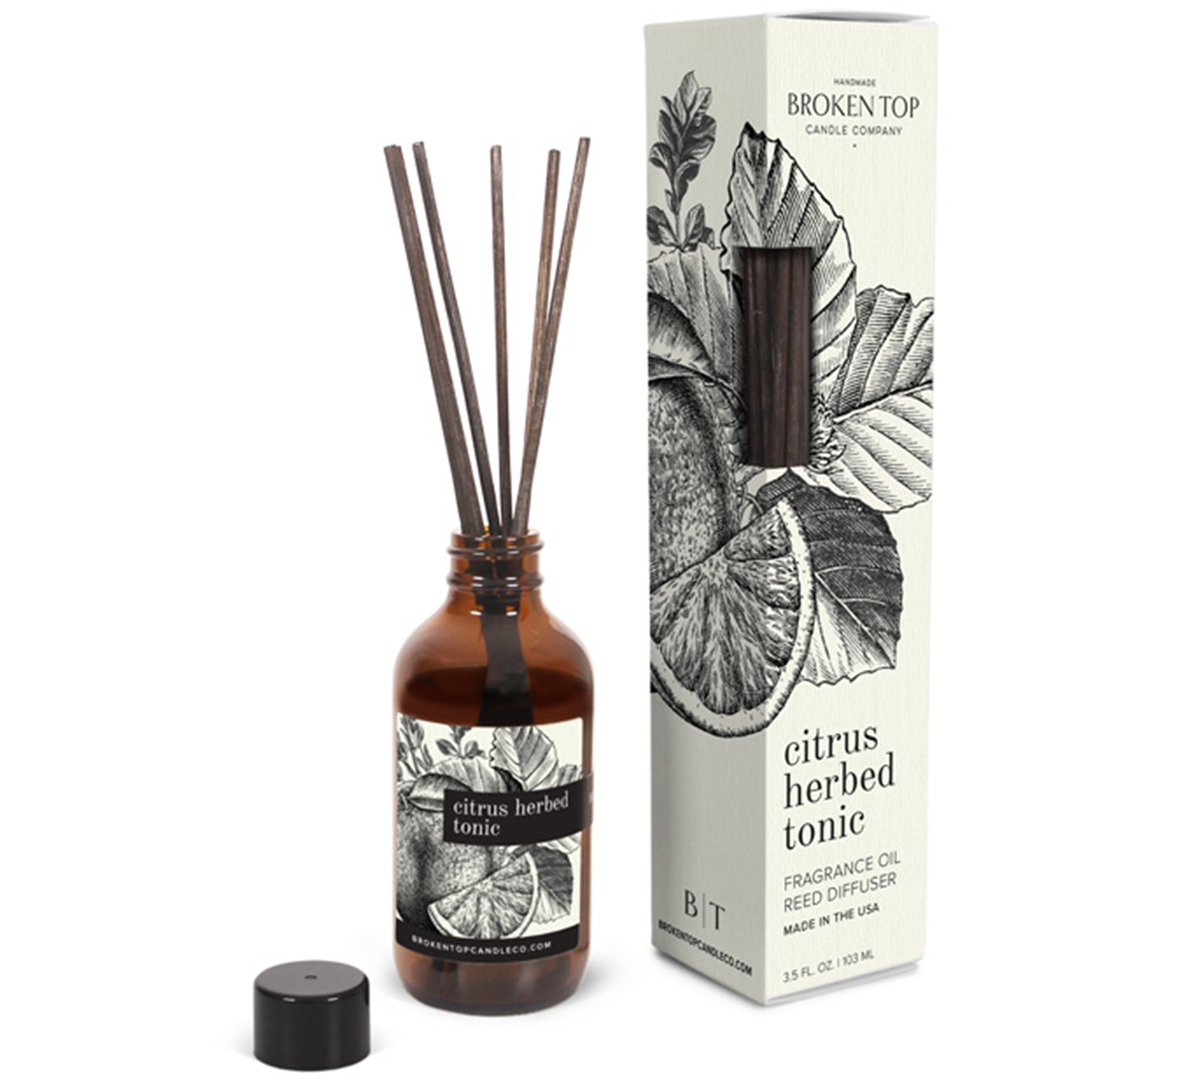 Citrus Herbed Tonic Fragrance Oil Reed Diffuser, 4 oz.